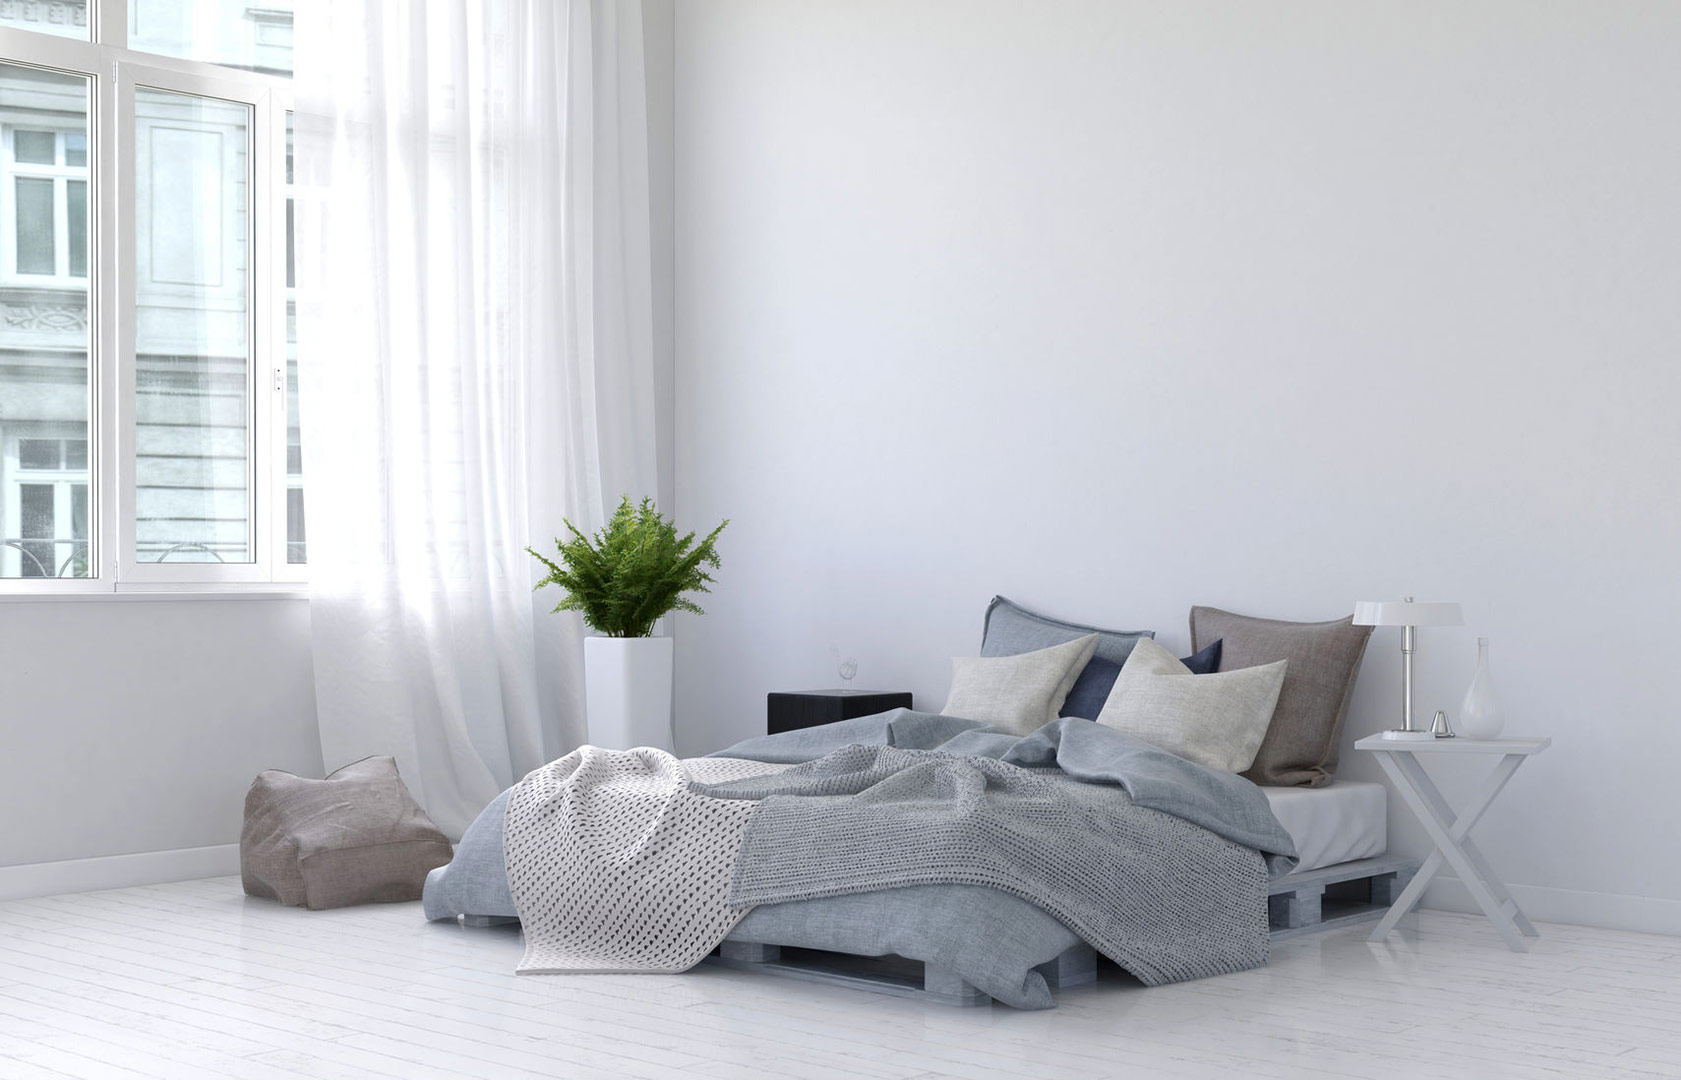 stunning white bedroom with a bed and very minimal accessories or furniture